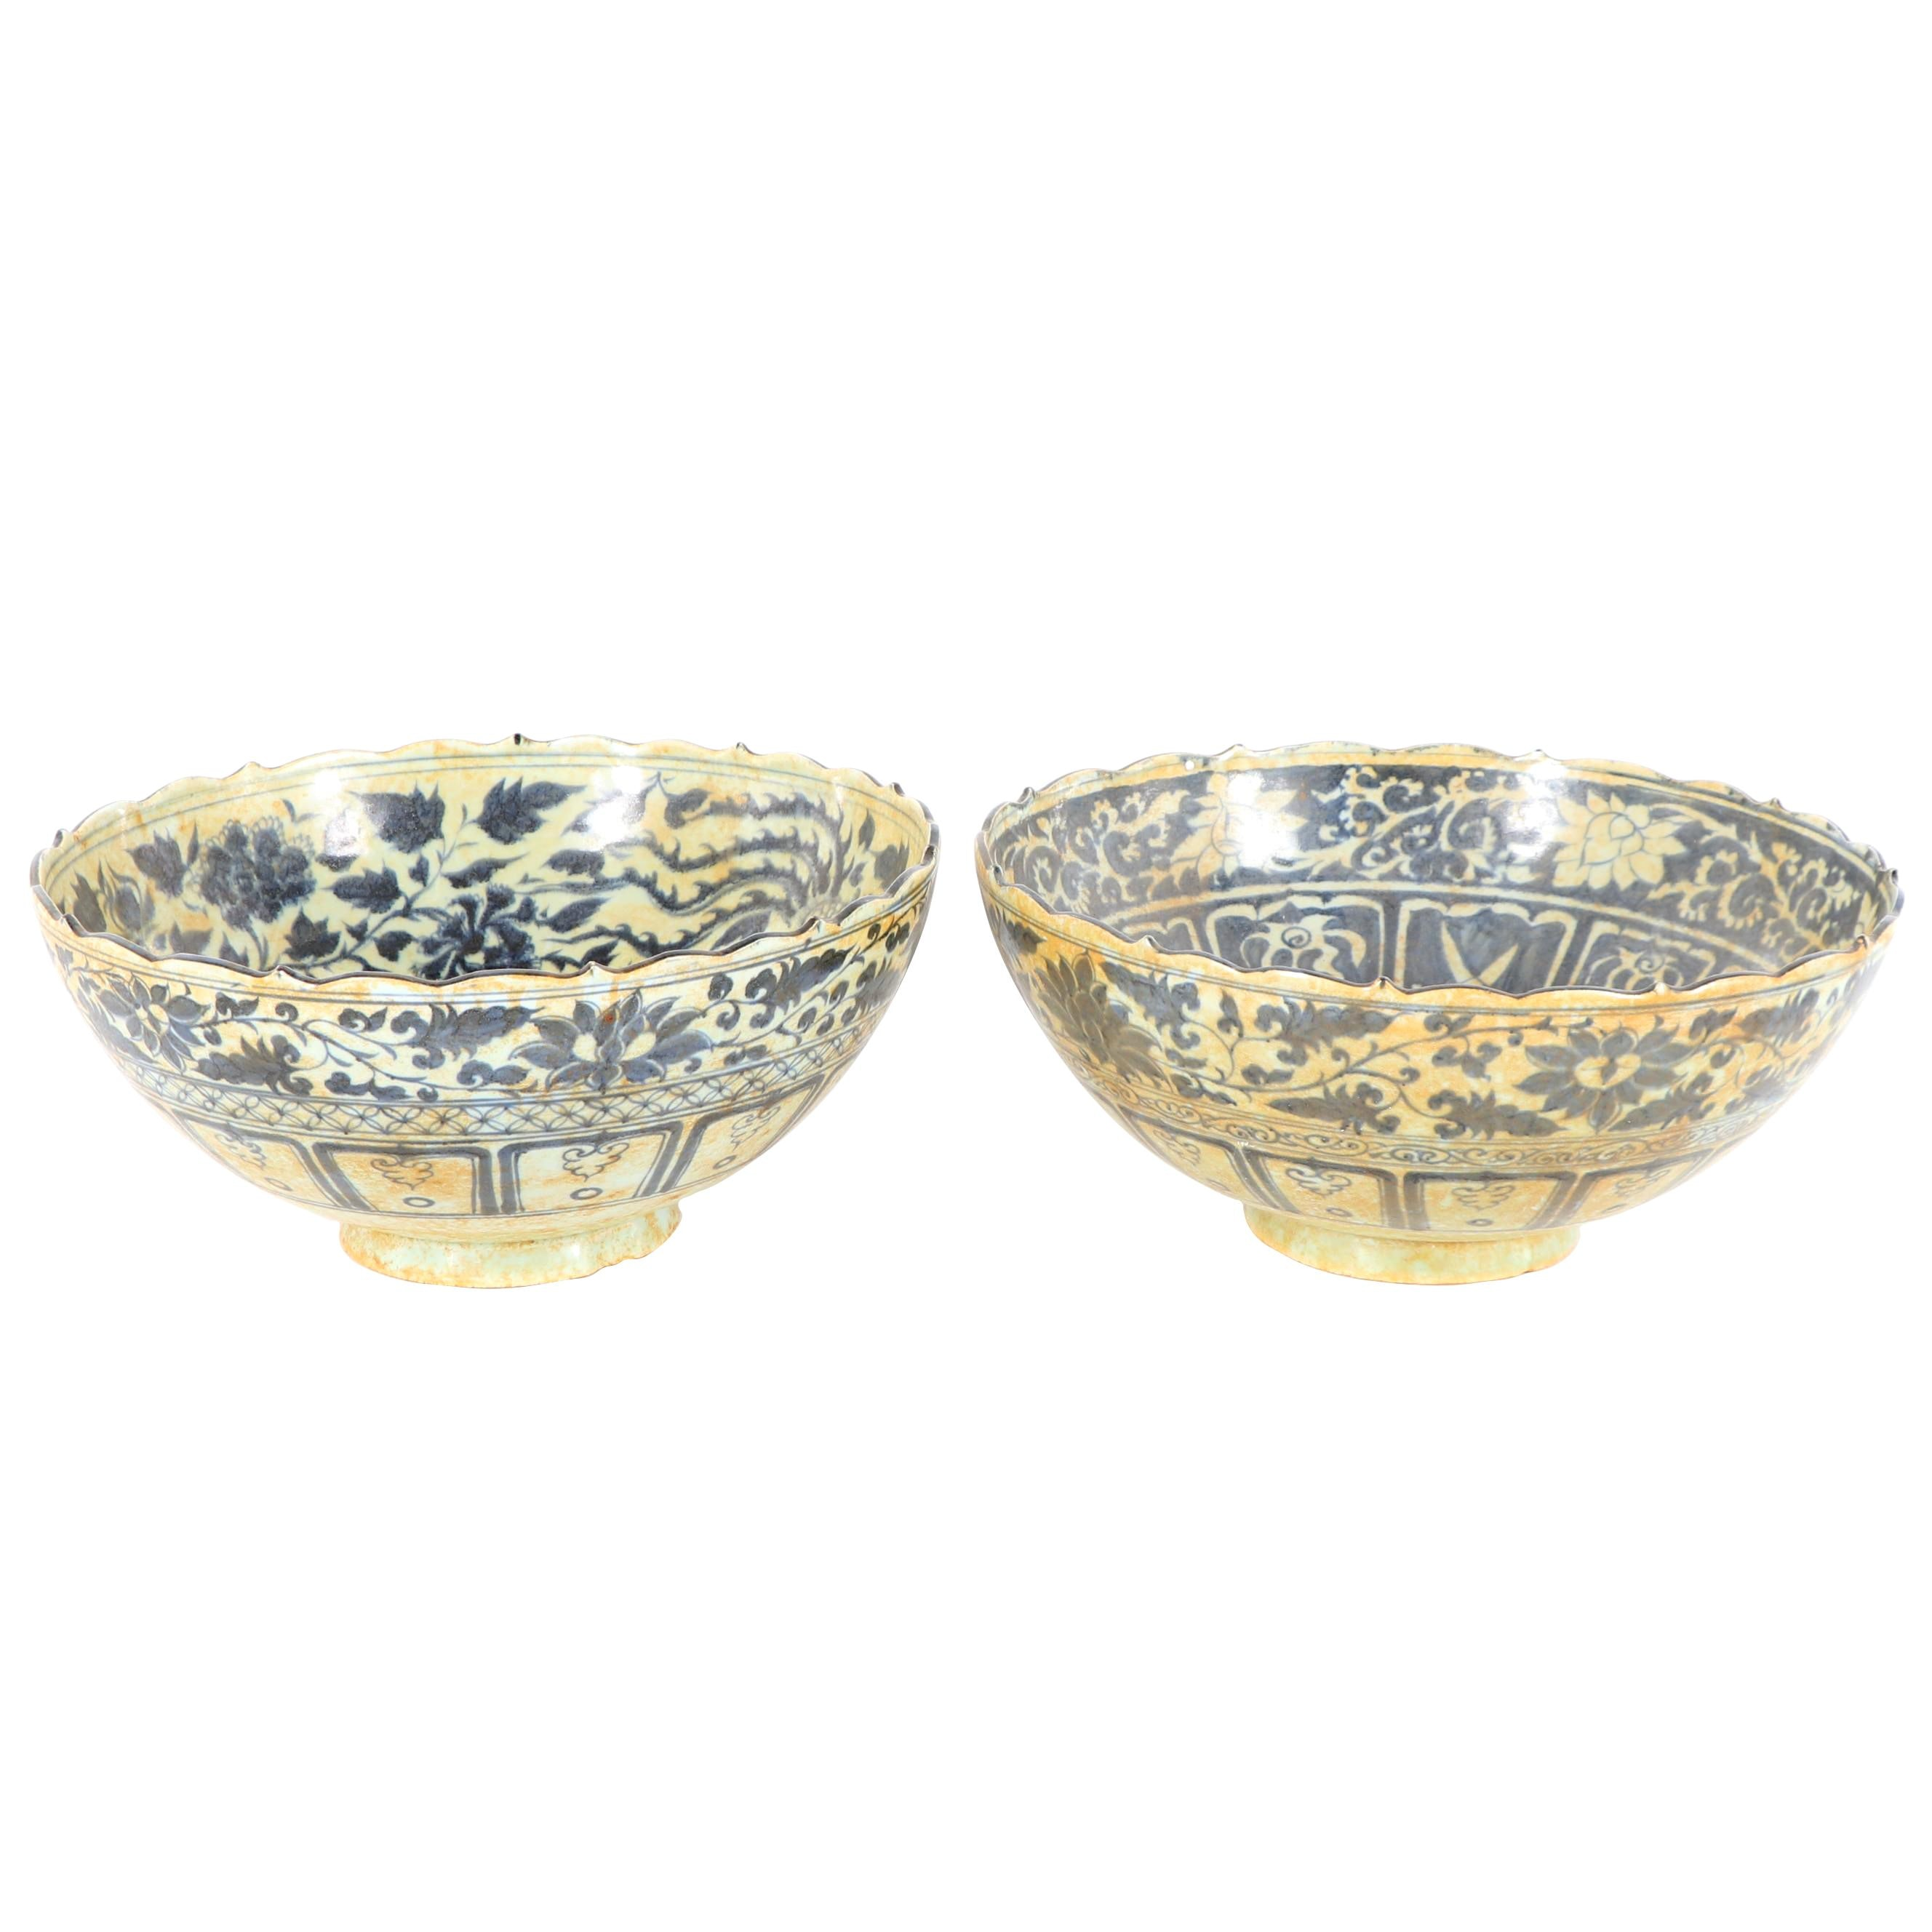 Chinese Blue and White Decorative Planter Bowls